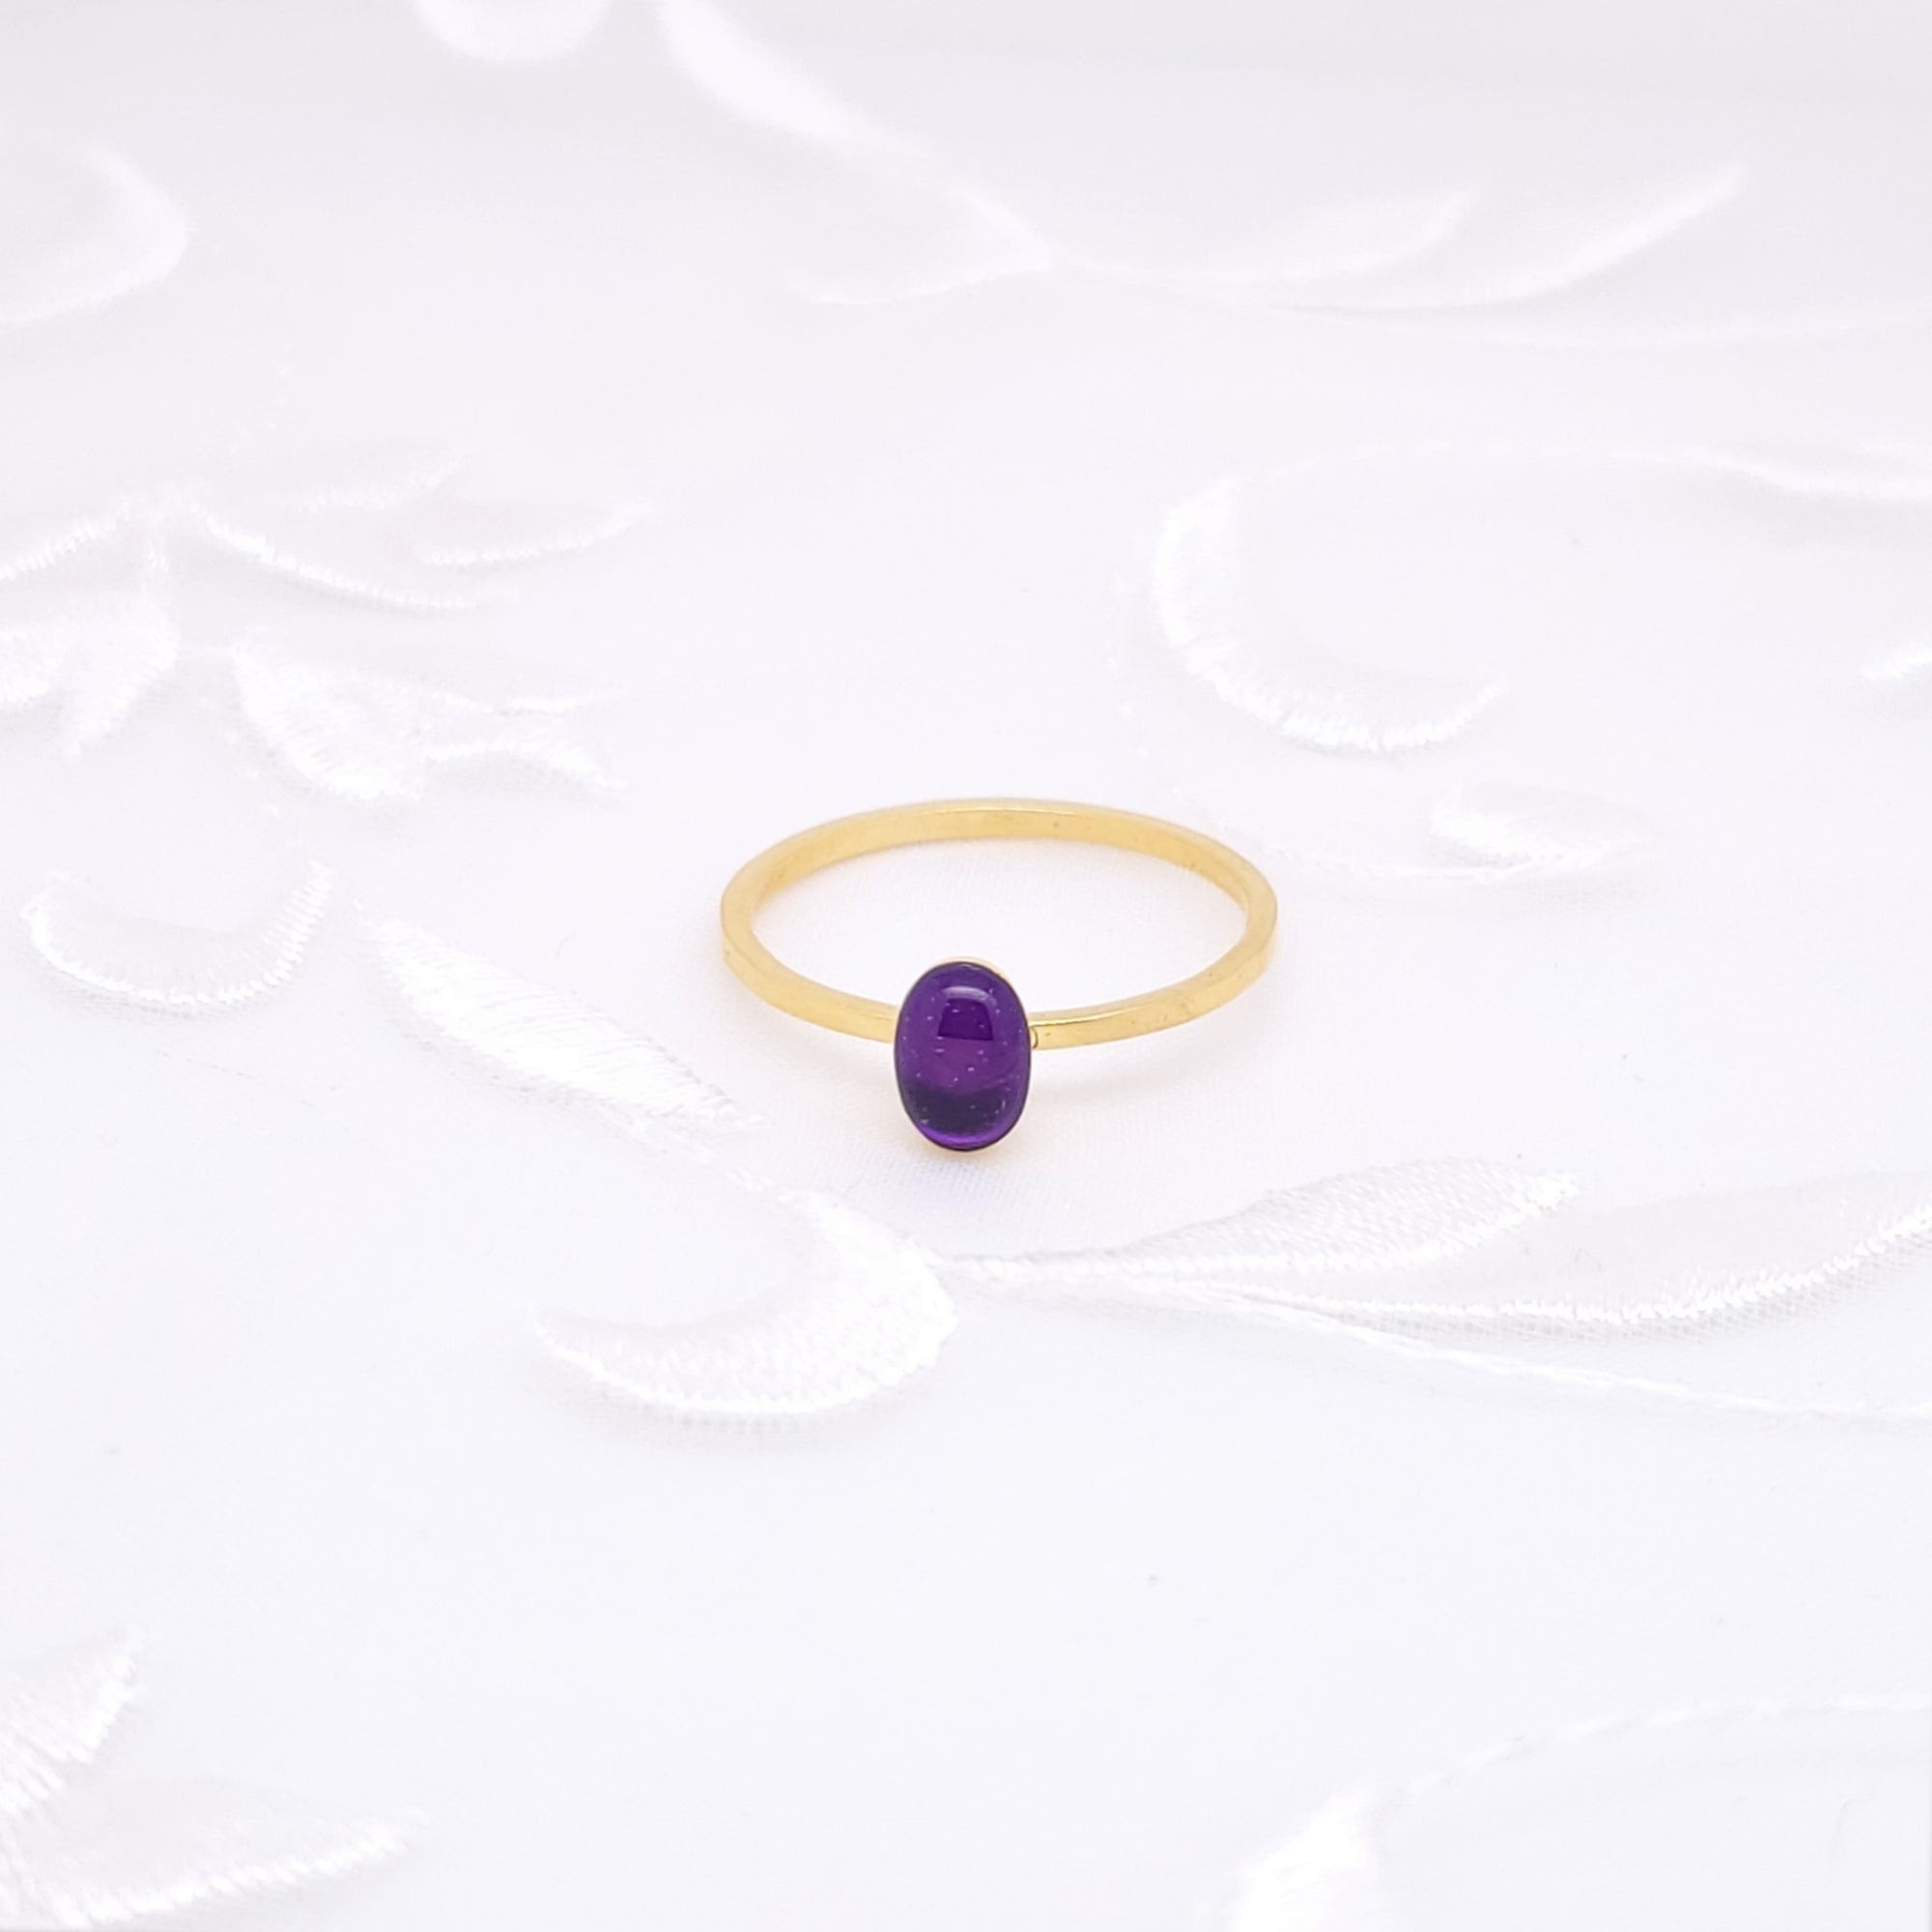 Antique Gold Oval Ring with Transparent Dark Purple Resin